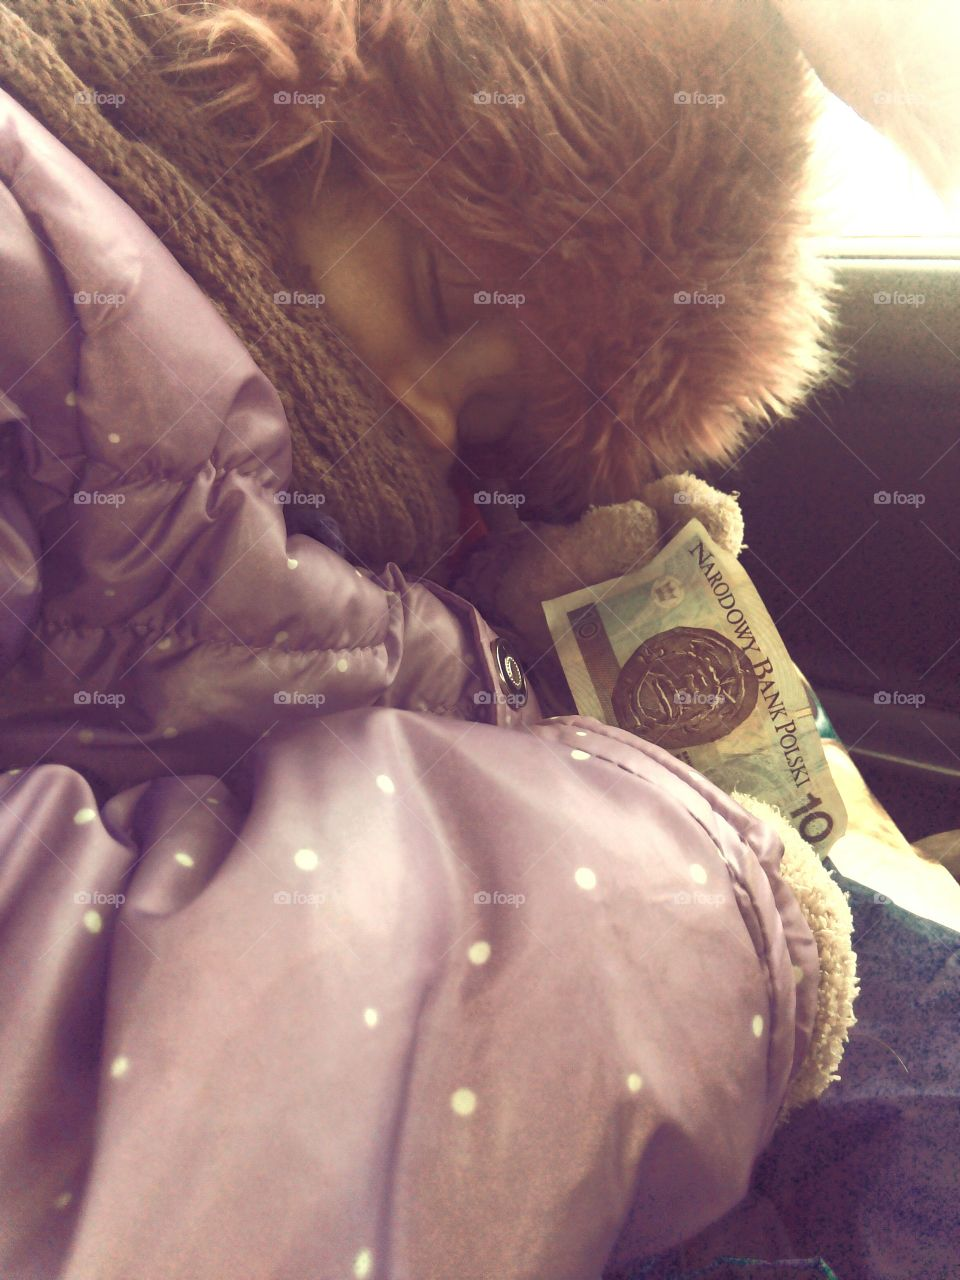 Child holding currency in hand while sleeping